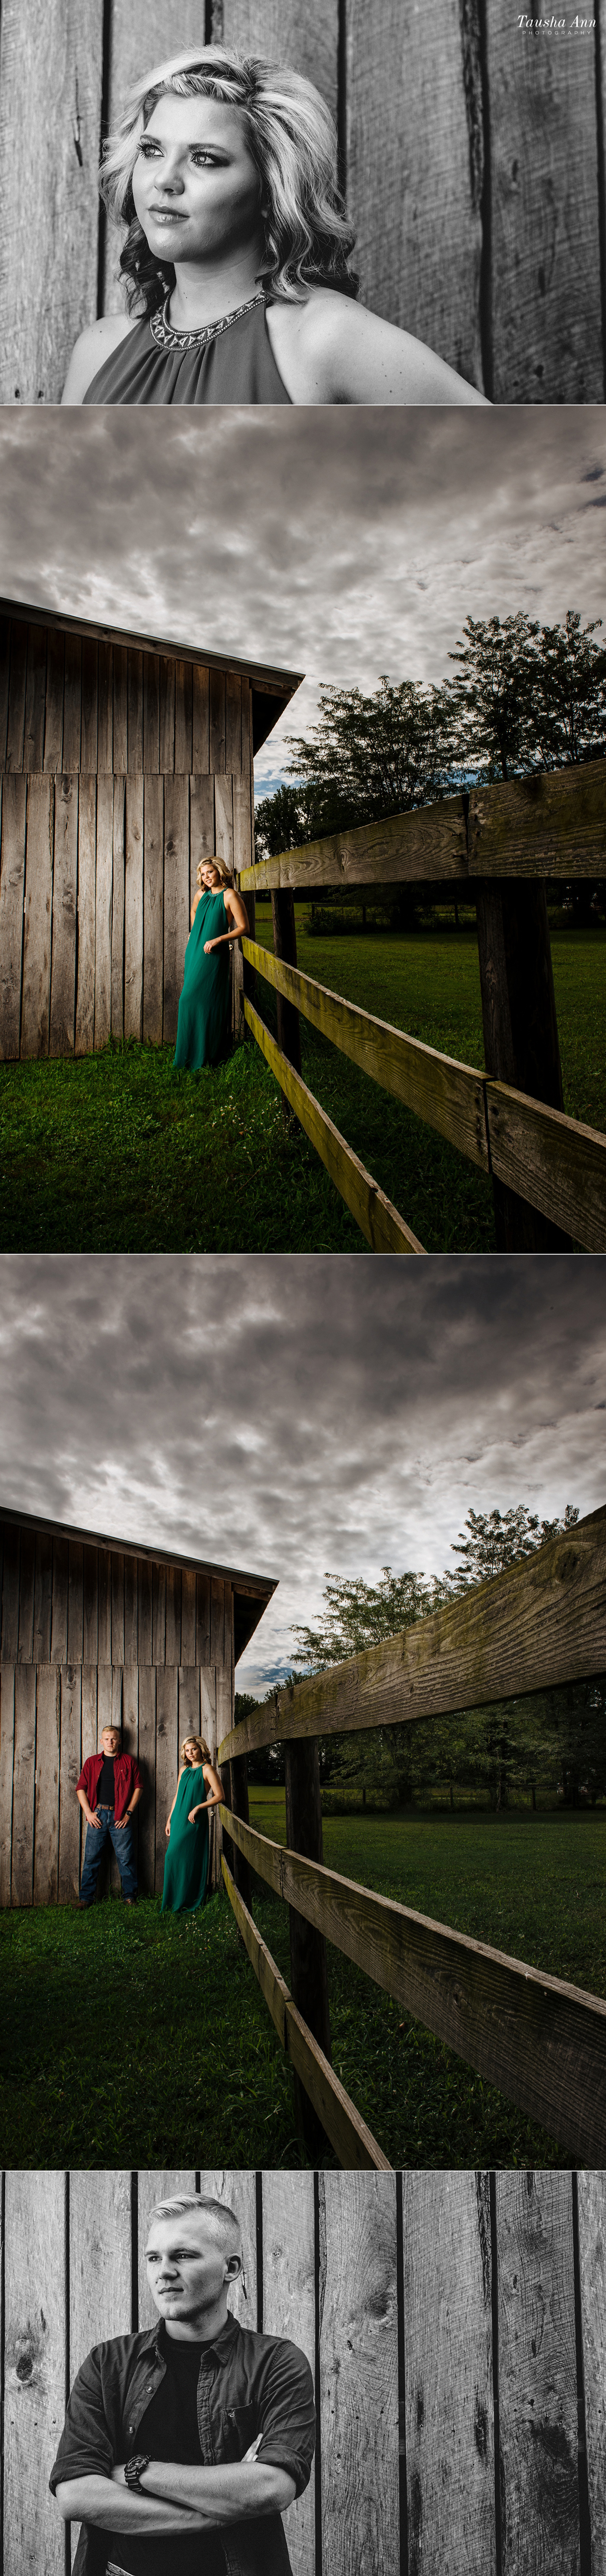 Nashville-Family-Photographer-Adams-TN-Farm-Shadrick-tausha-ann-photography-epic-photos-storm-clouds-0075